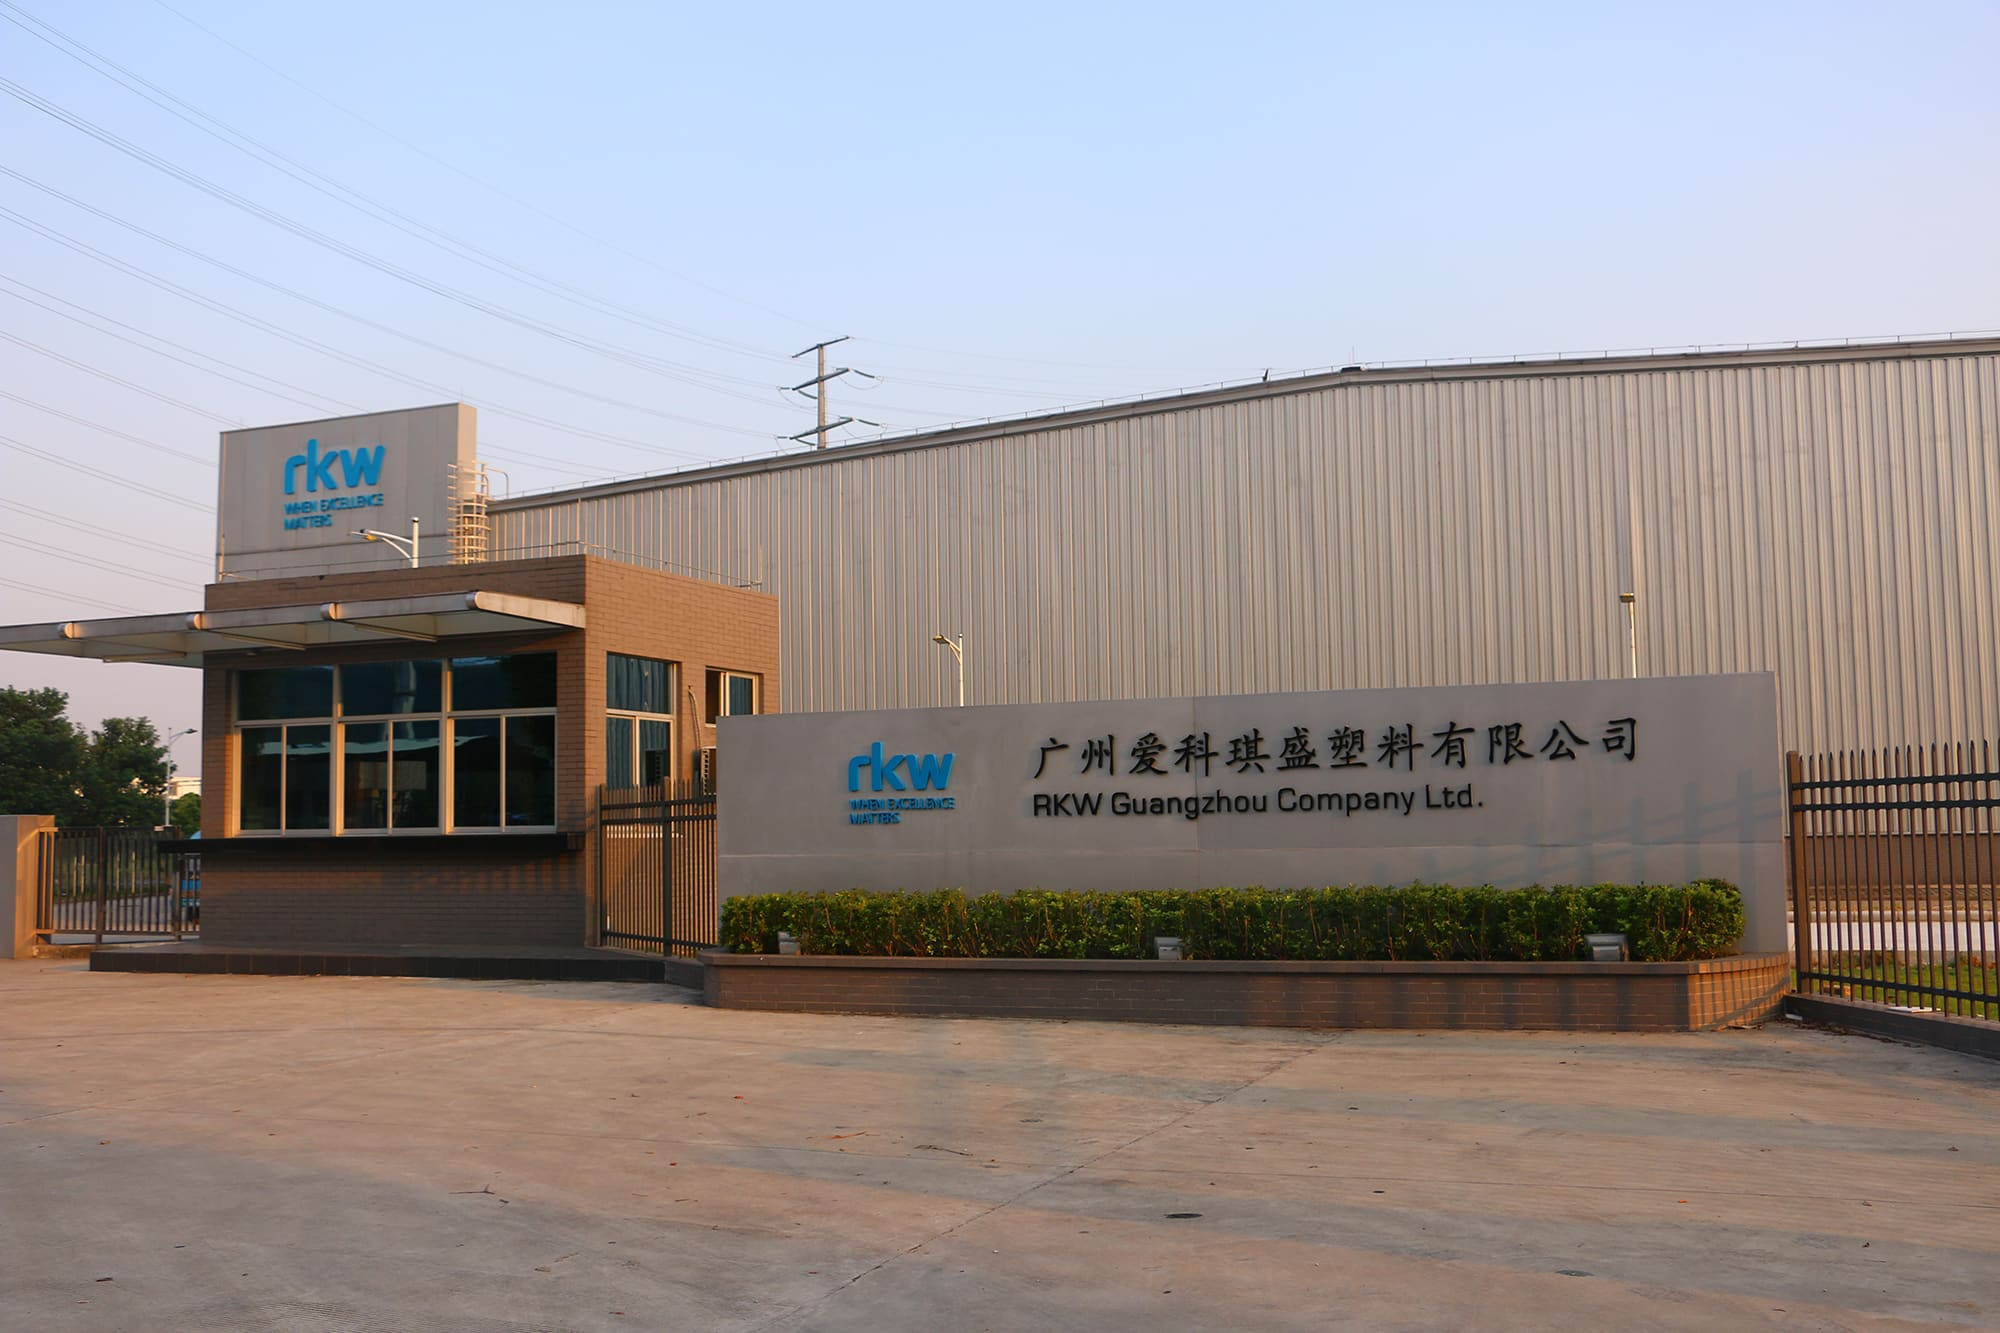 RKW Group - GUZ Exterior Building